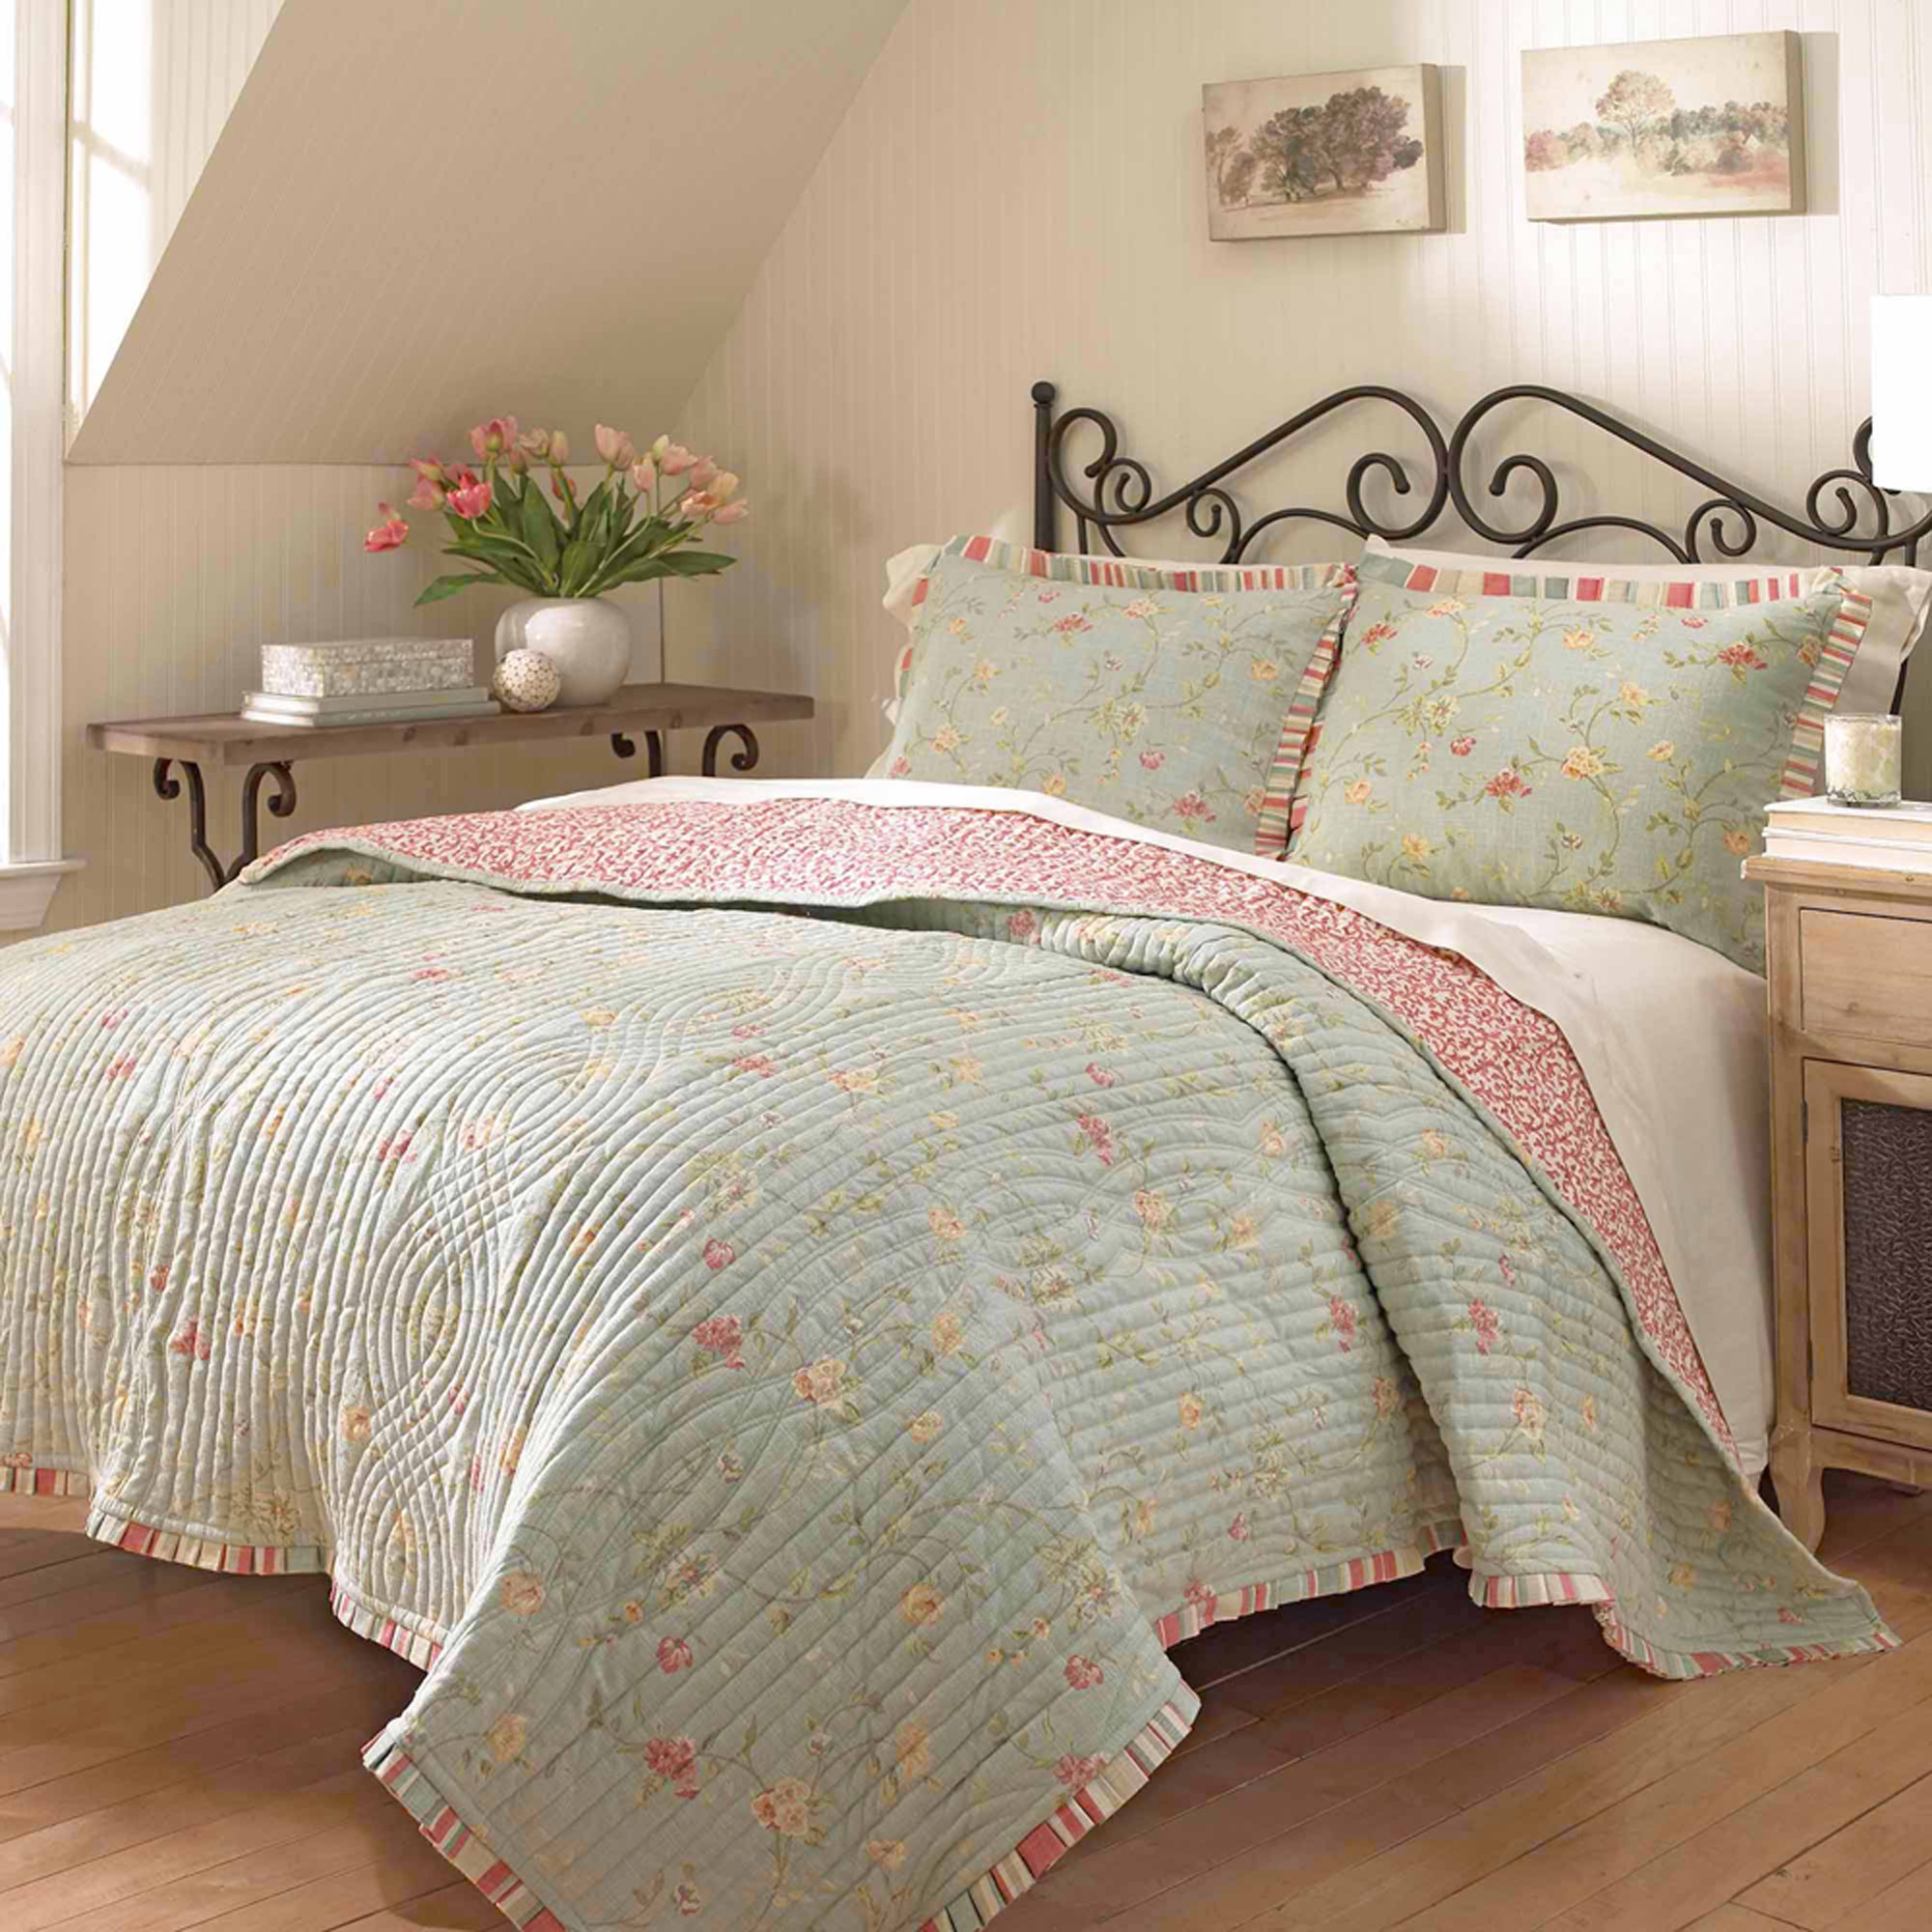 chirp comforter king sets set images iii collection parchment bedding size linens accessories waverly garden comforters and quilts quilt